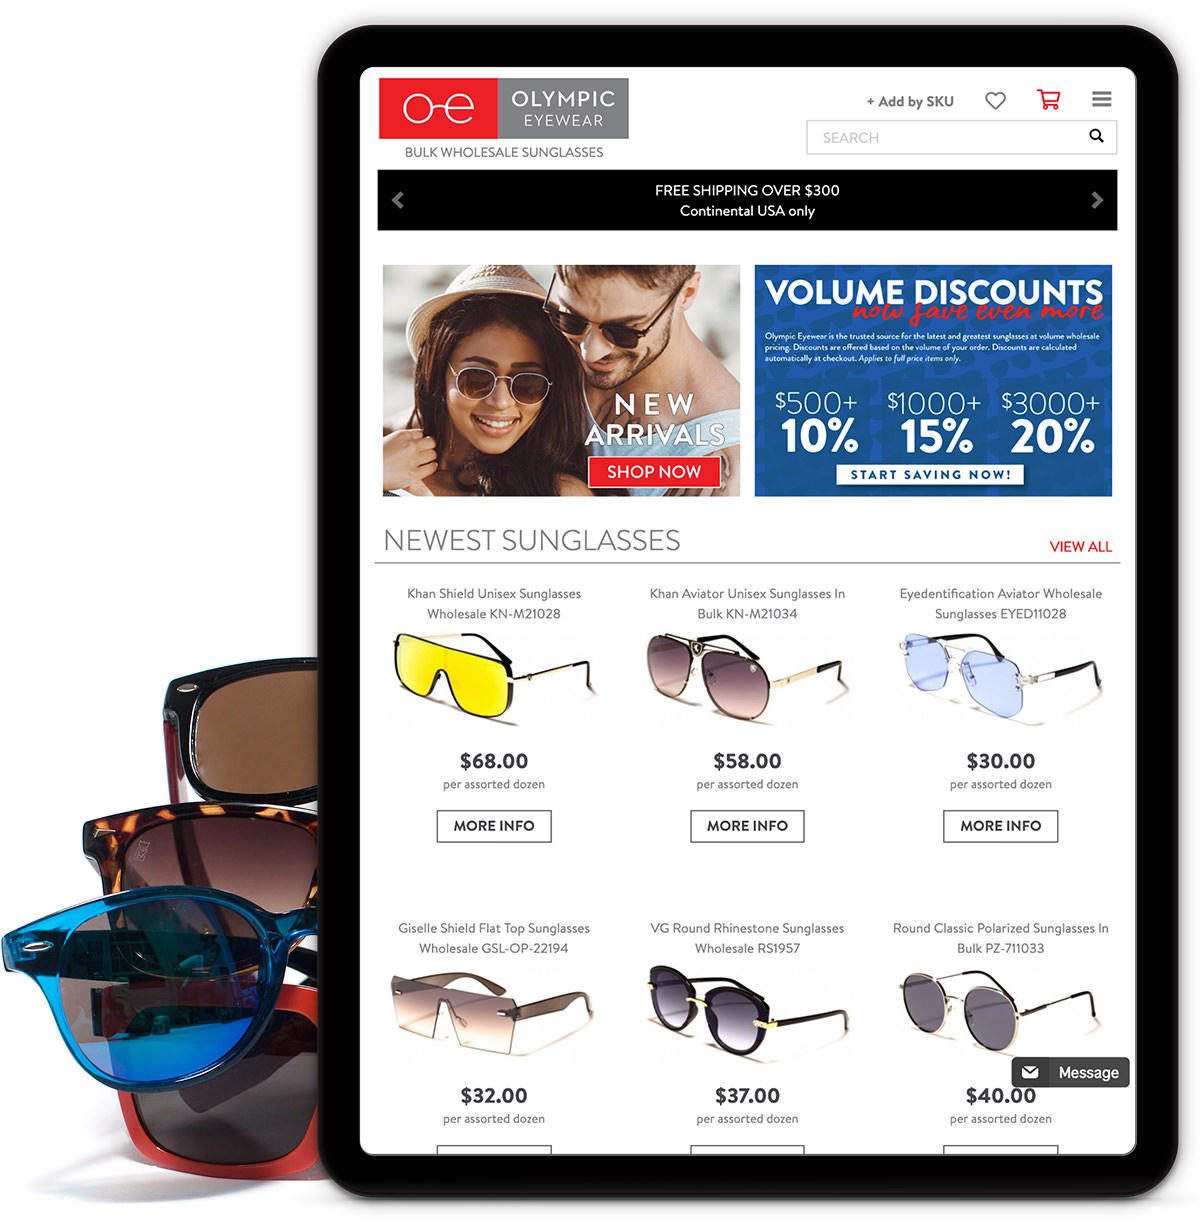 Olympic Eyewear-Tablet-Mockup-Composite-1200.jpg